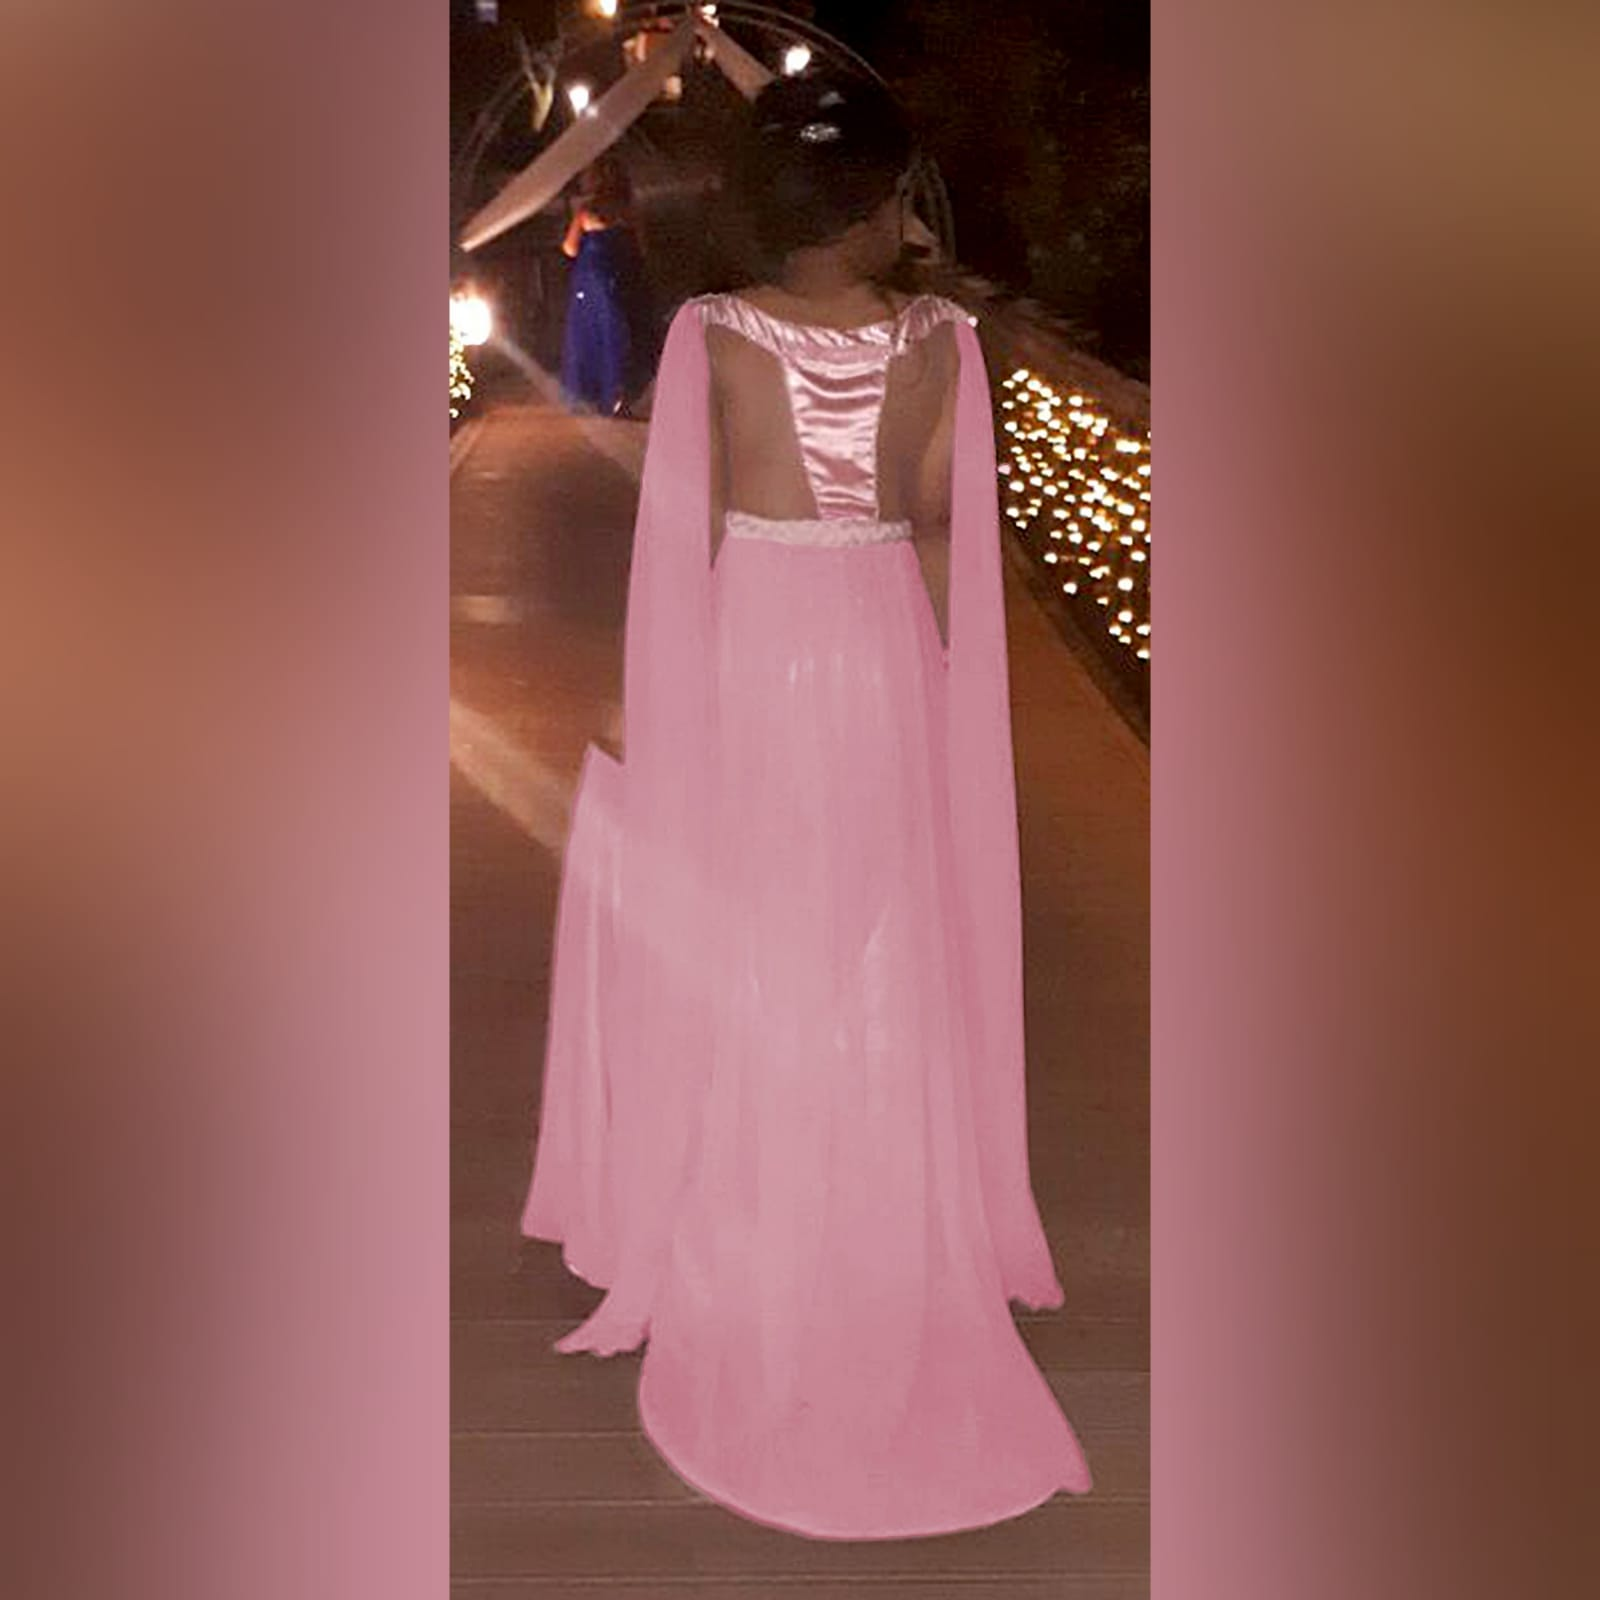 Dusty pink chiffon beaded prom dress 6 dusty pink chiffon beaded prom dress, bateau neckline effect with an illusion back, fully beaded bodice, plaited belt detail with a slit and a train. Shoulders with chiffon draping creating a goddess look.